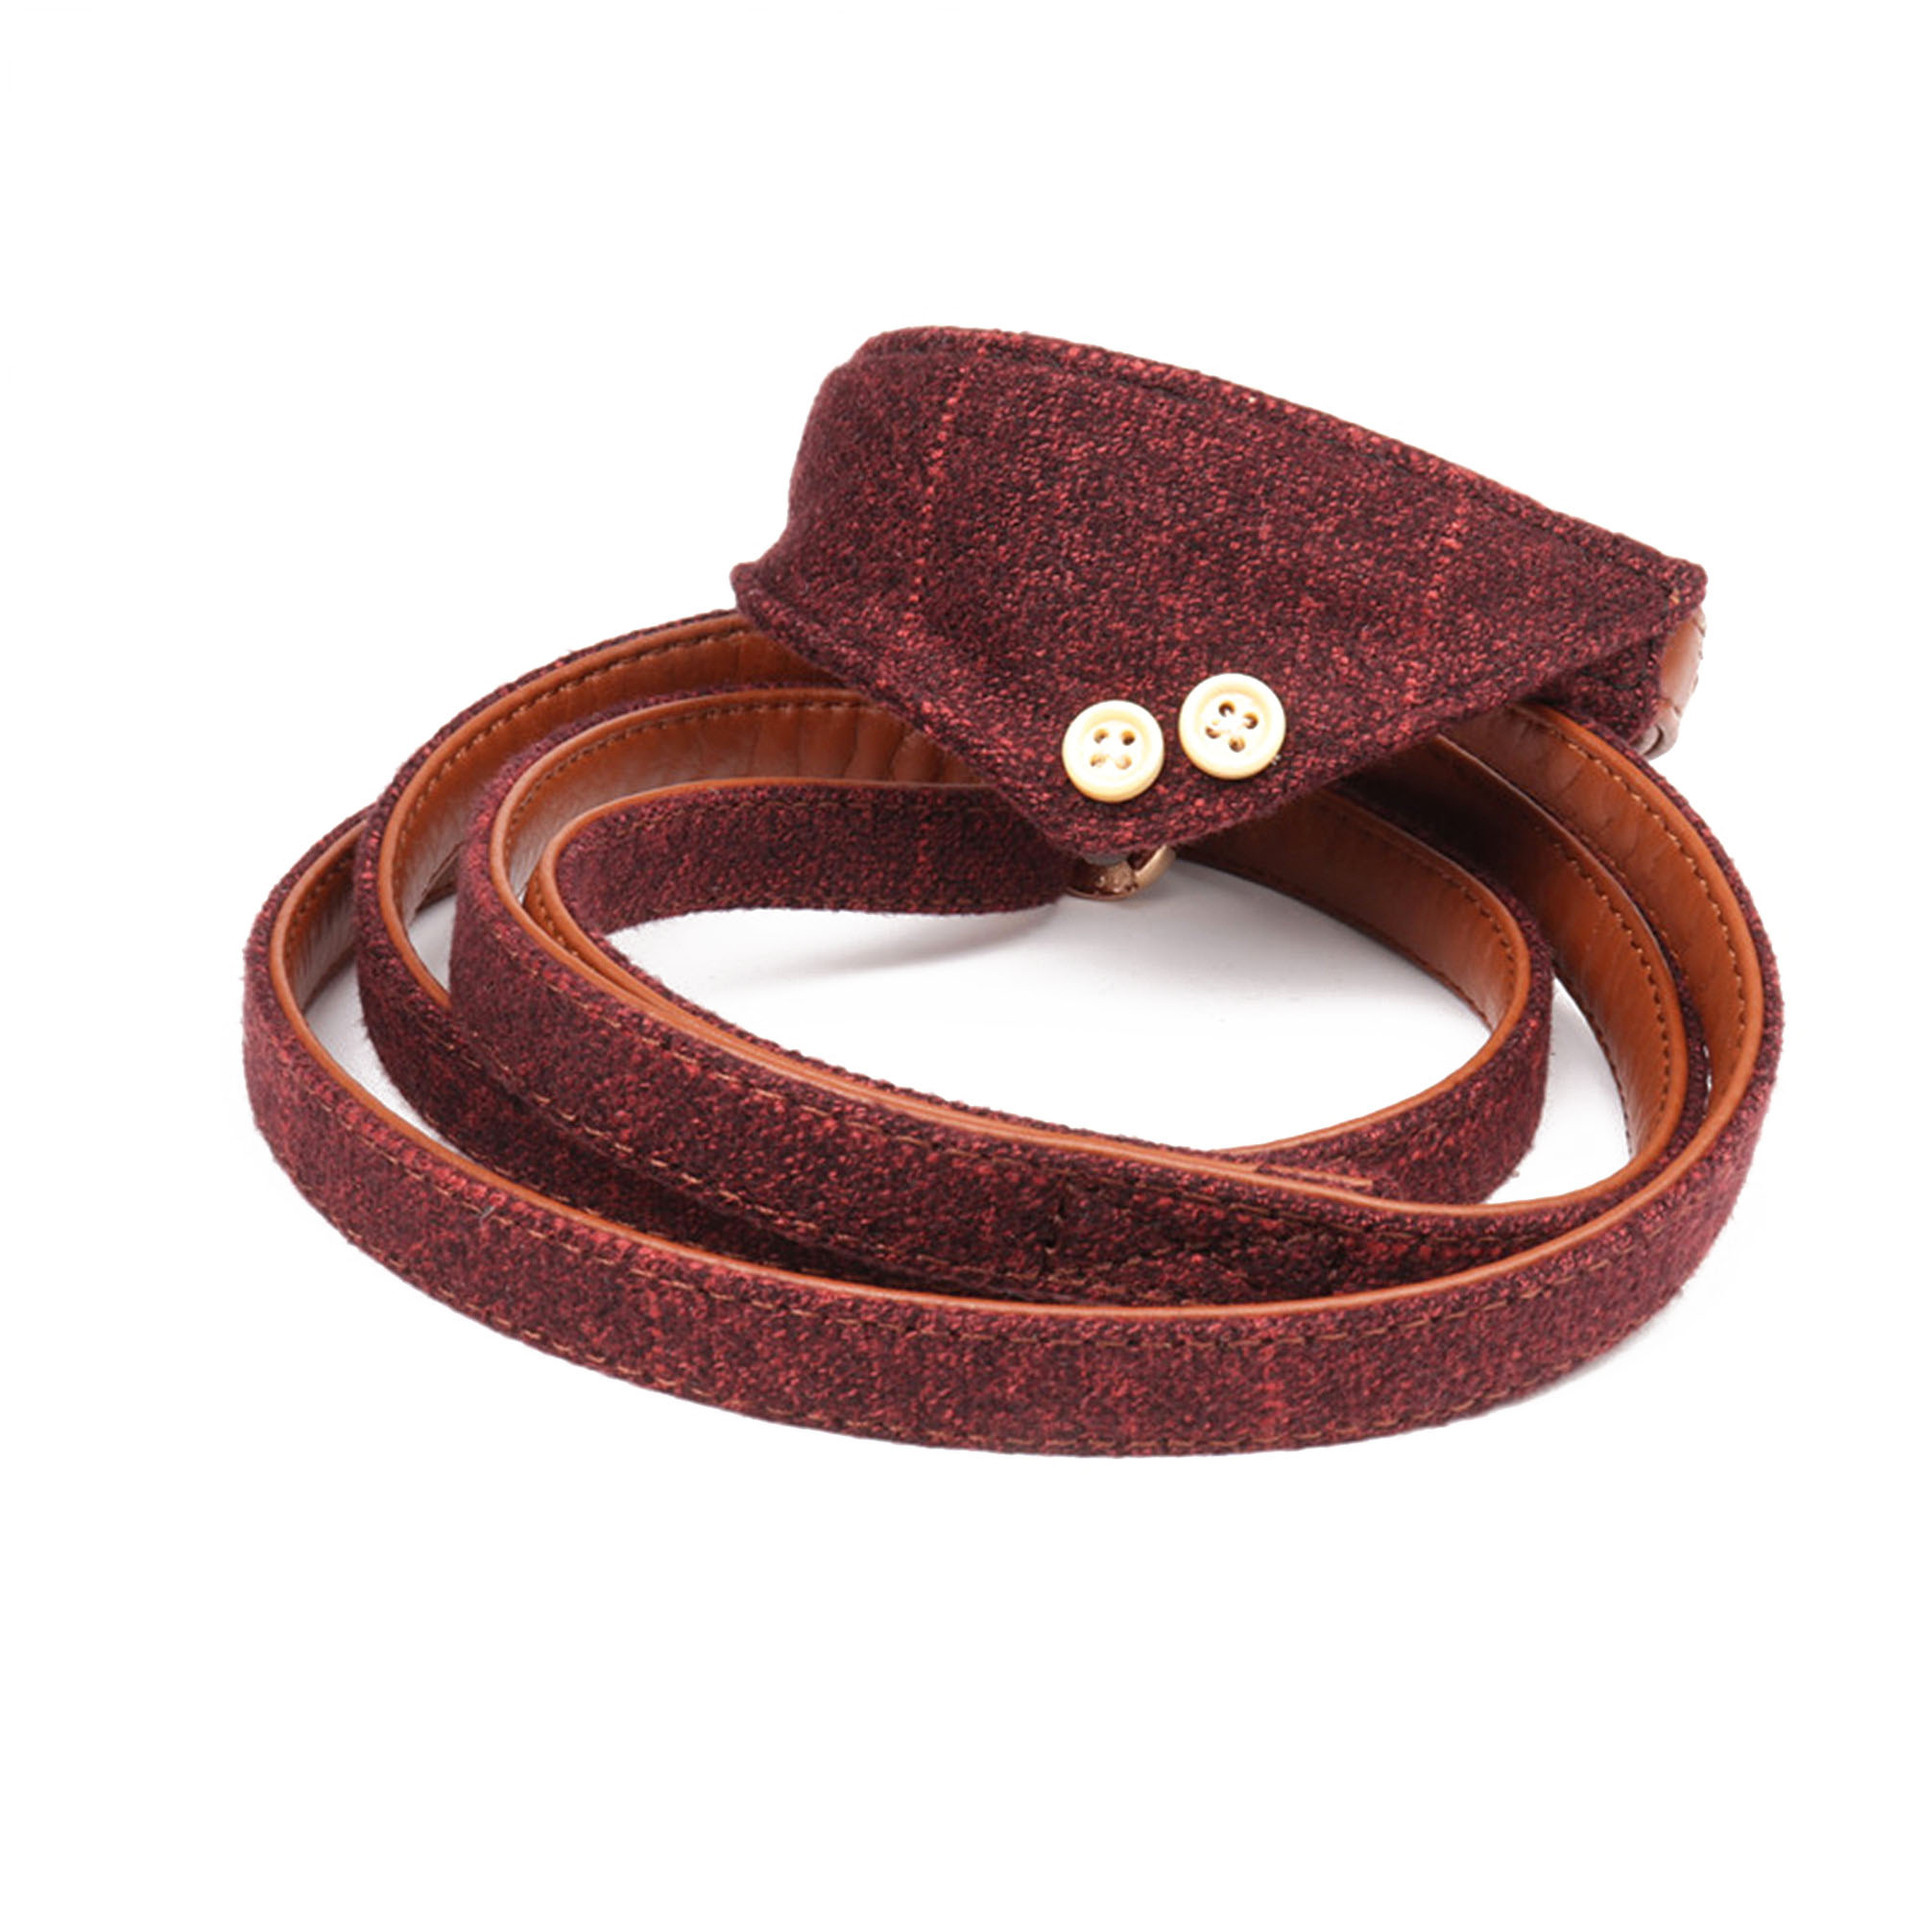 Jin Jie Te Origional Small And Medium-sized Dogs Pu Gou Hand Holding Rope England Pet Triangular Scarf Neck Ring